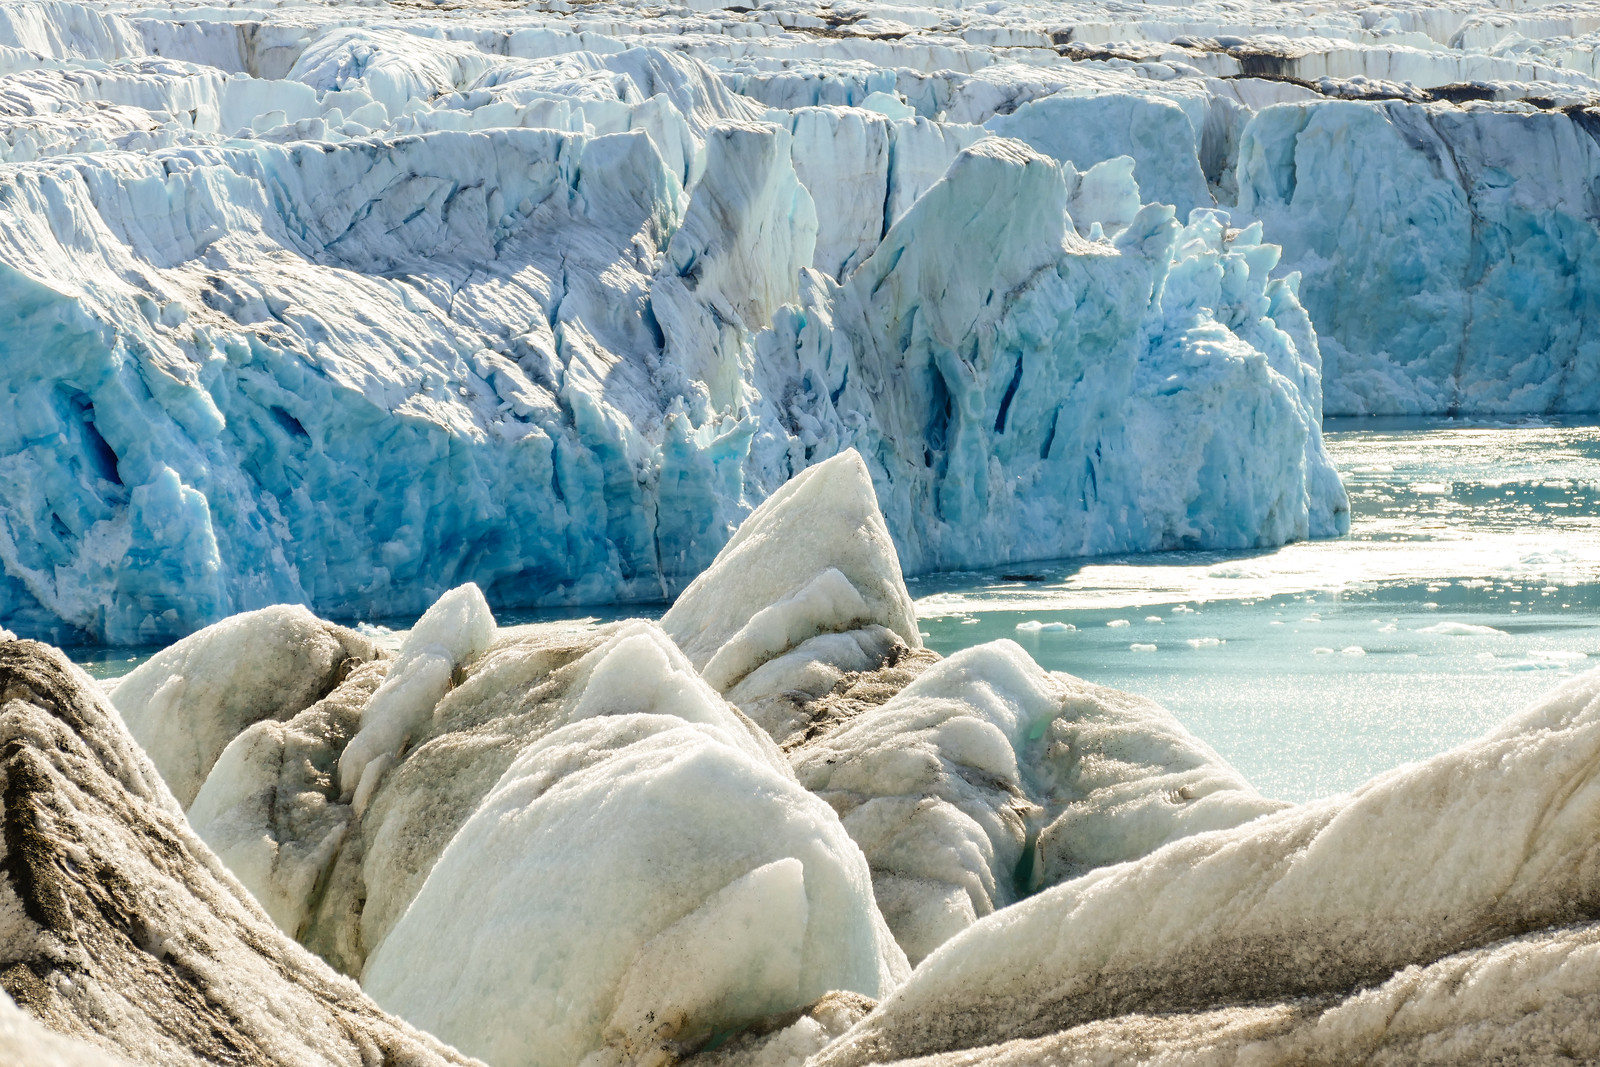 Close up view of a glacier